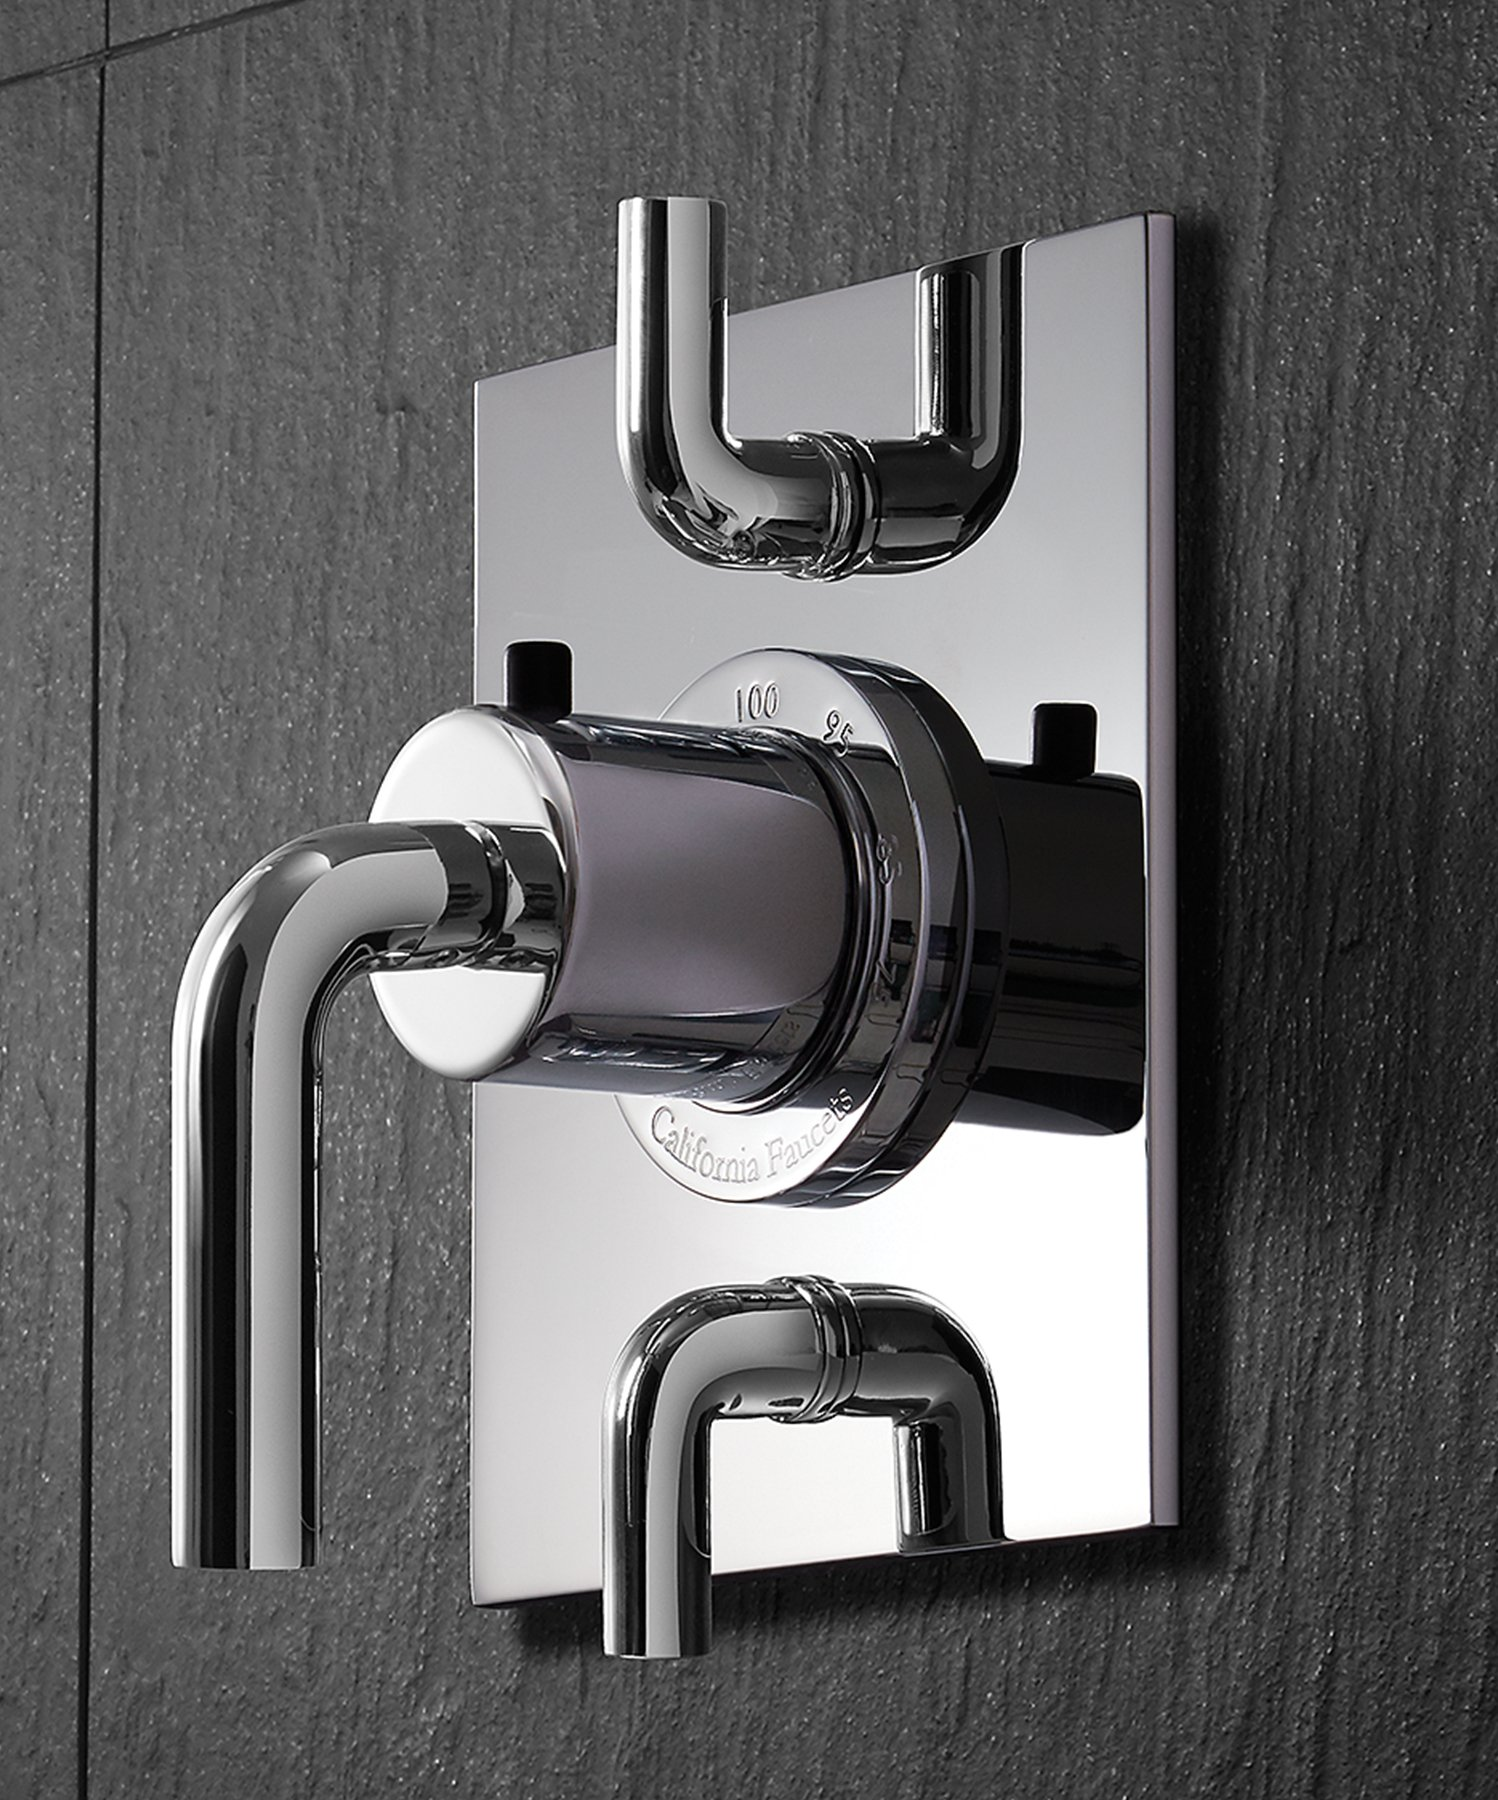 The StyleTherm TH52D2 is a two-outlet valve that allows for installation of multiple showering devices.